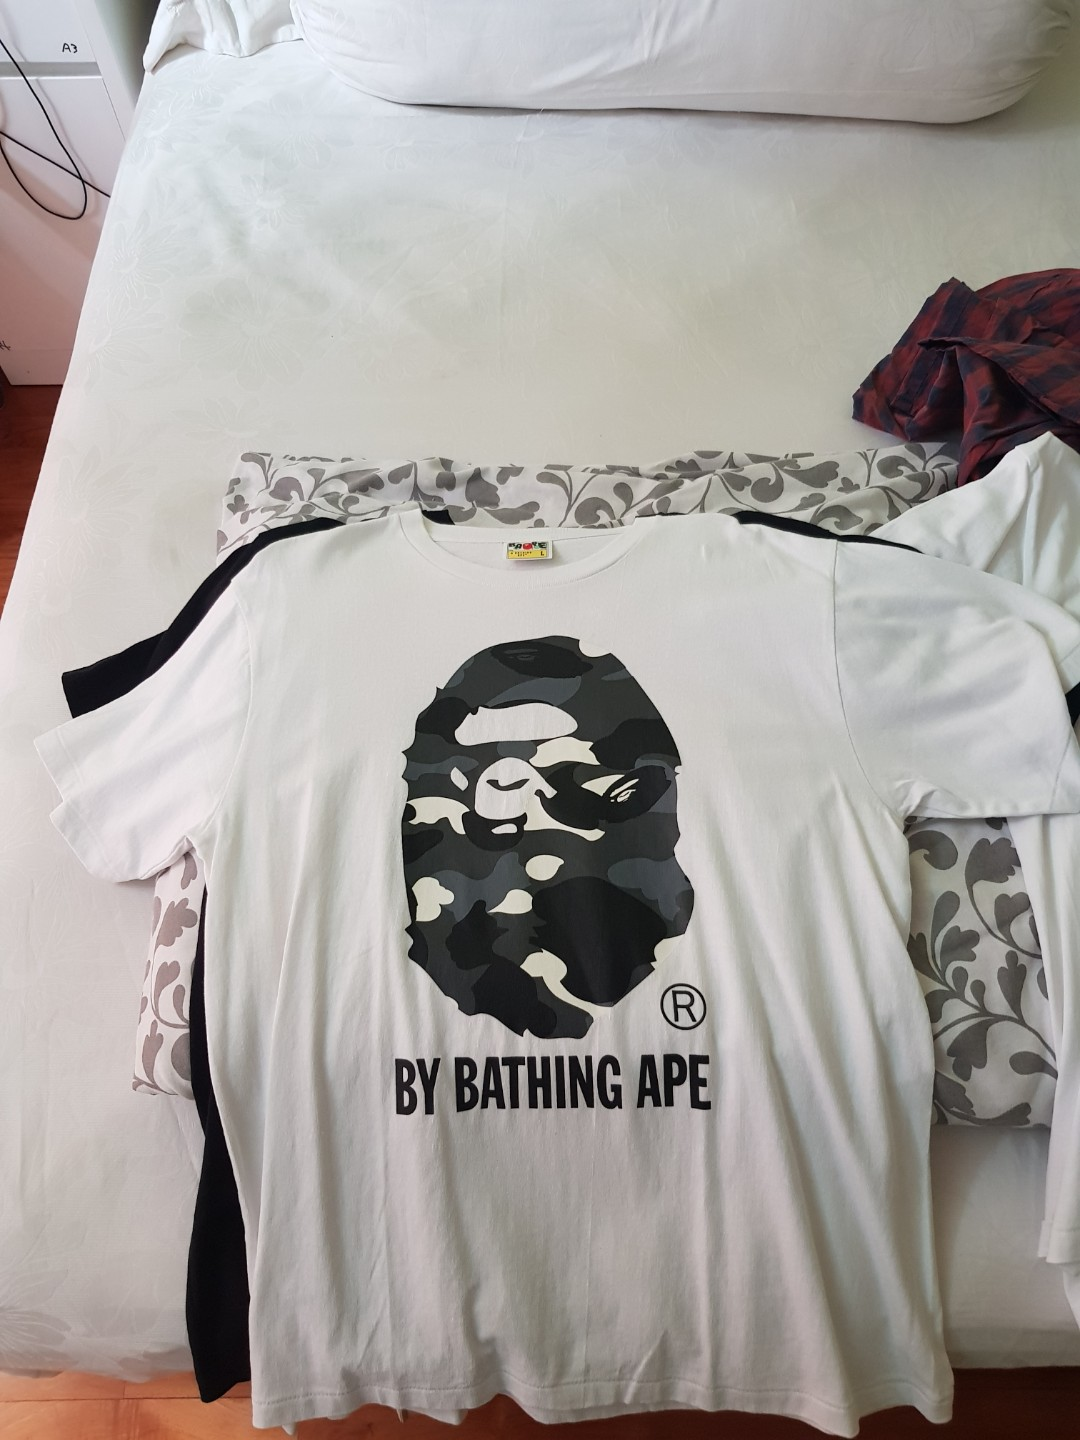 2537e5a0 Authentic Bathing Ape shirts Size L, Men's Fashion, Clothes, Tops on ...